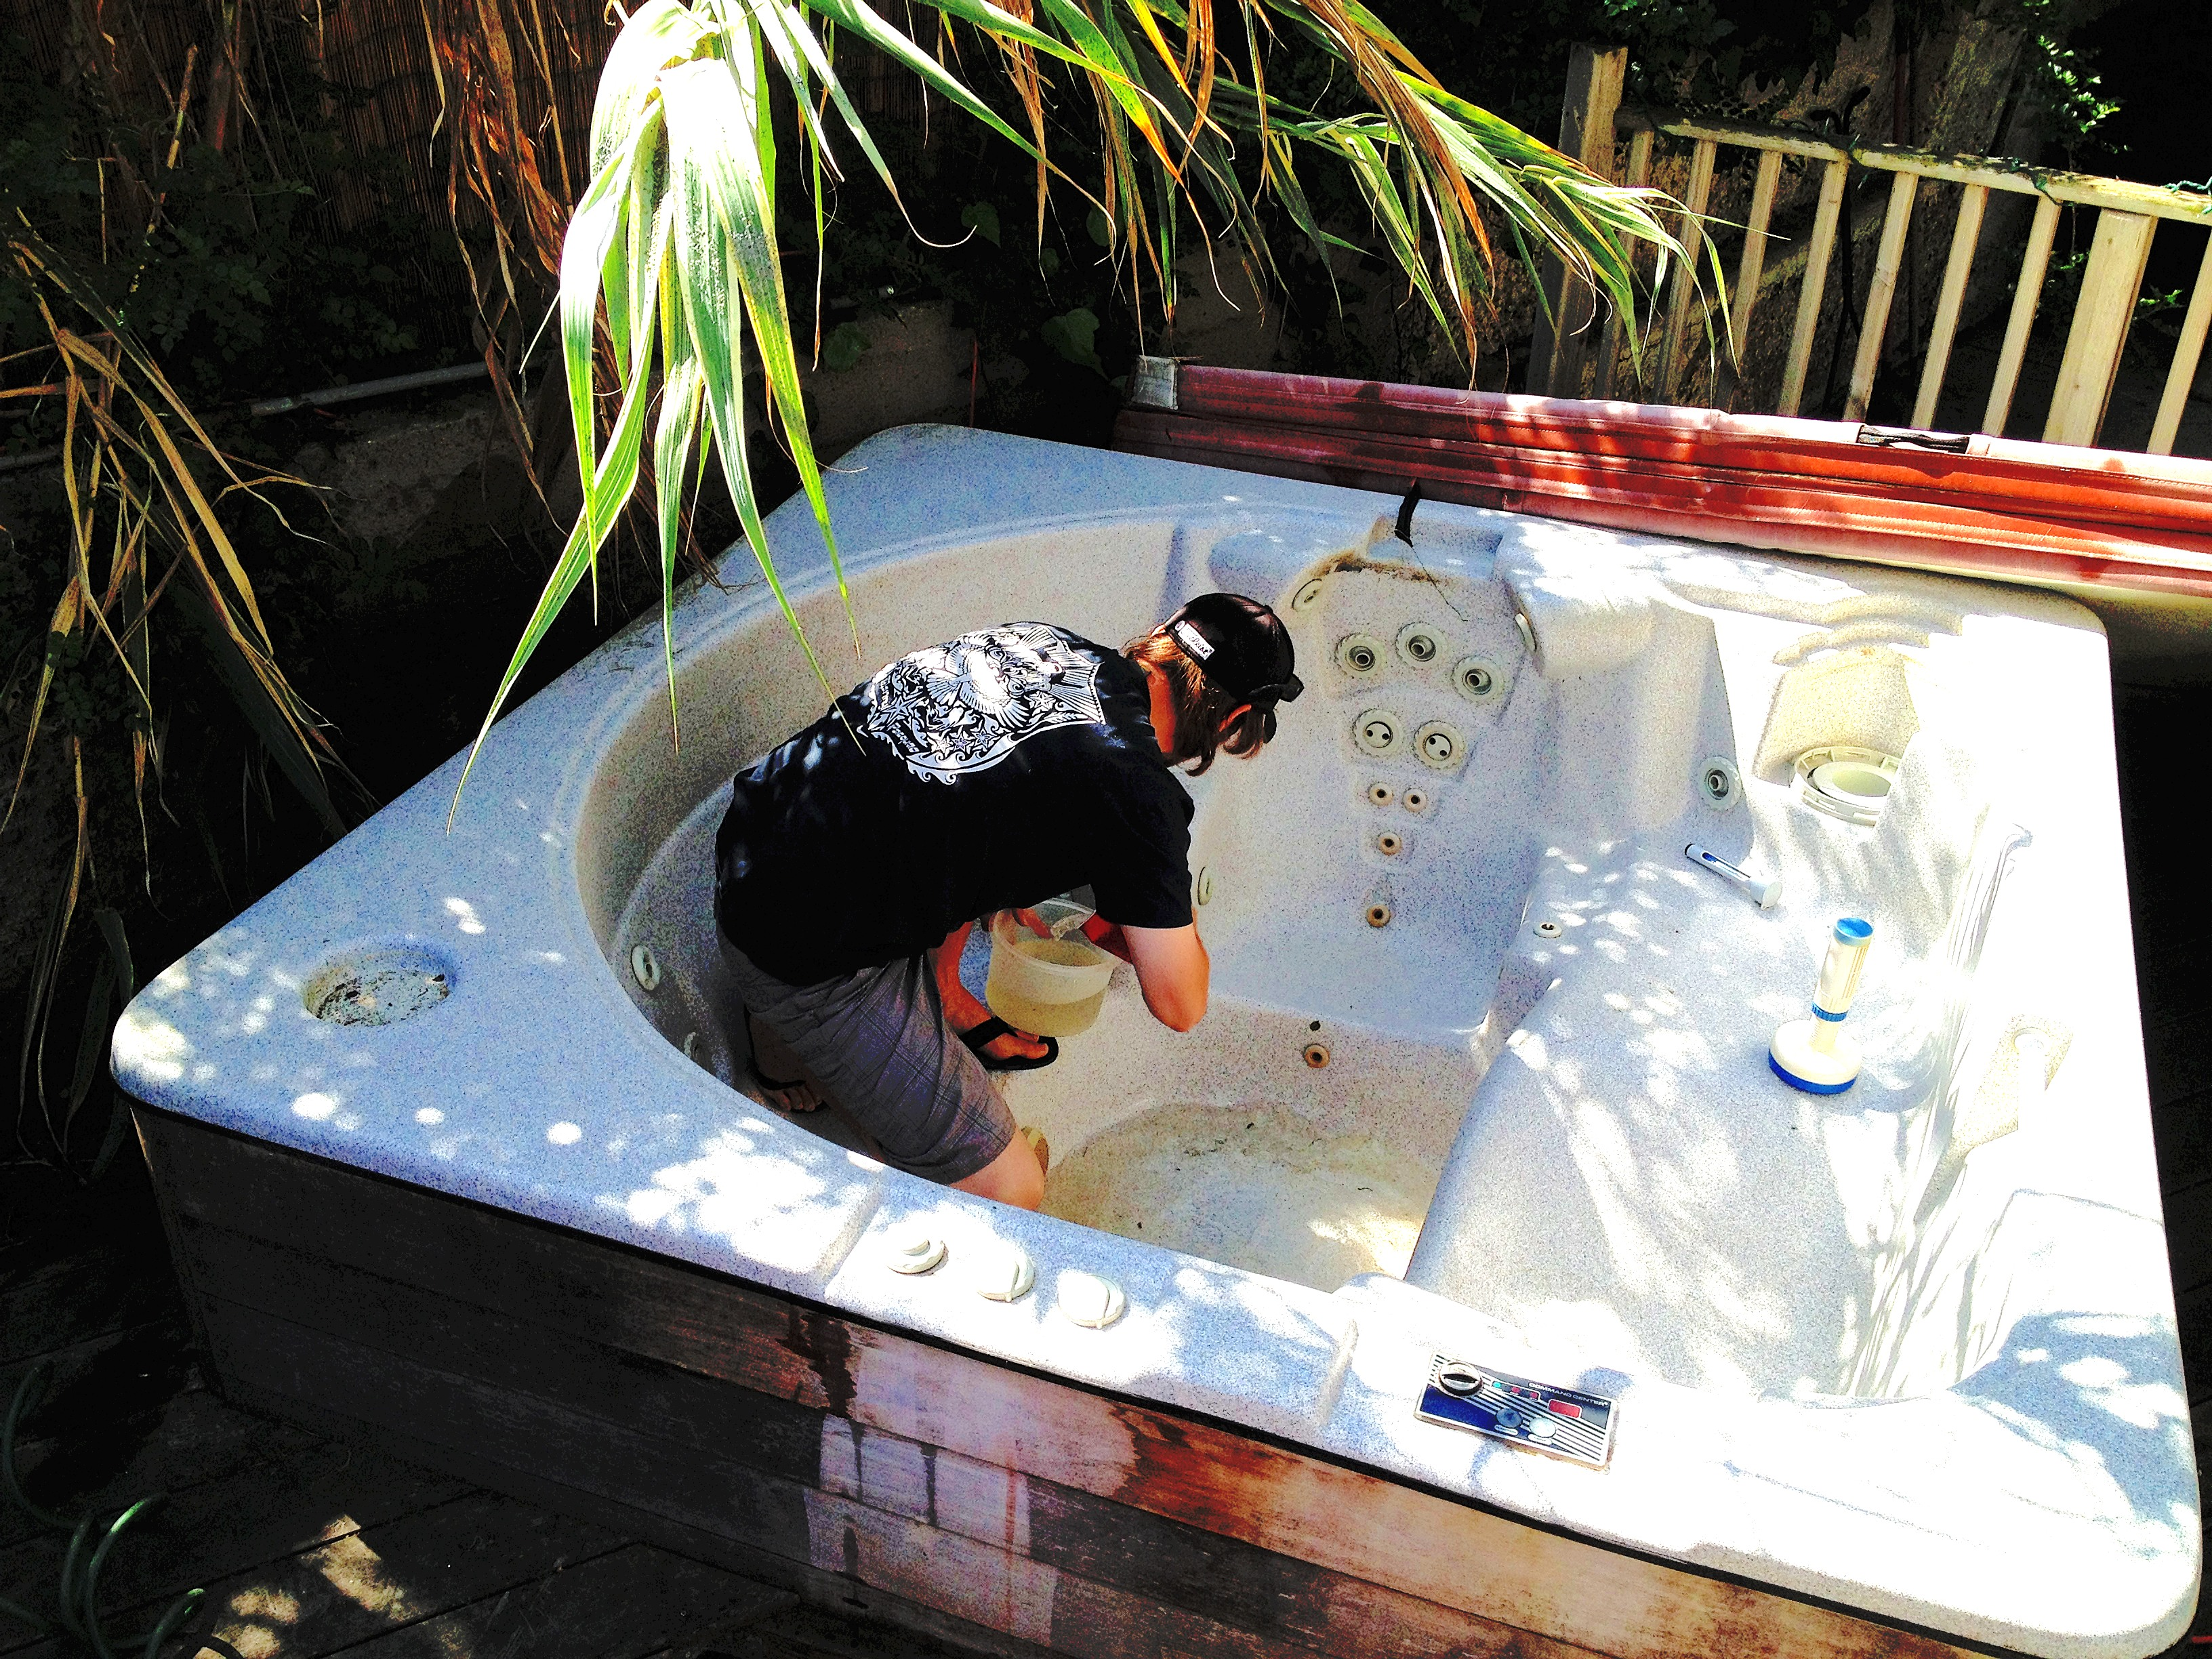 its at barrie firth best tubs spa luxury hot tub